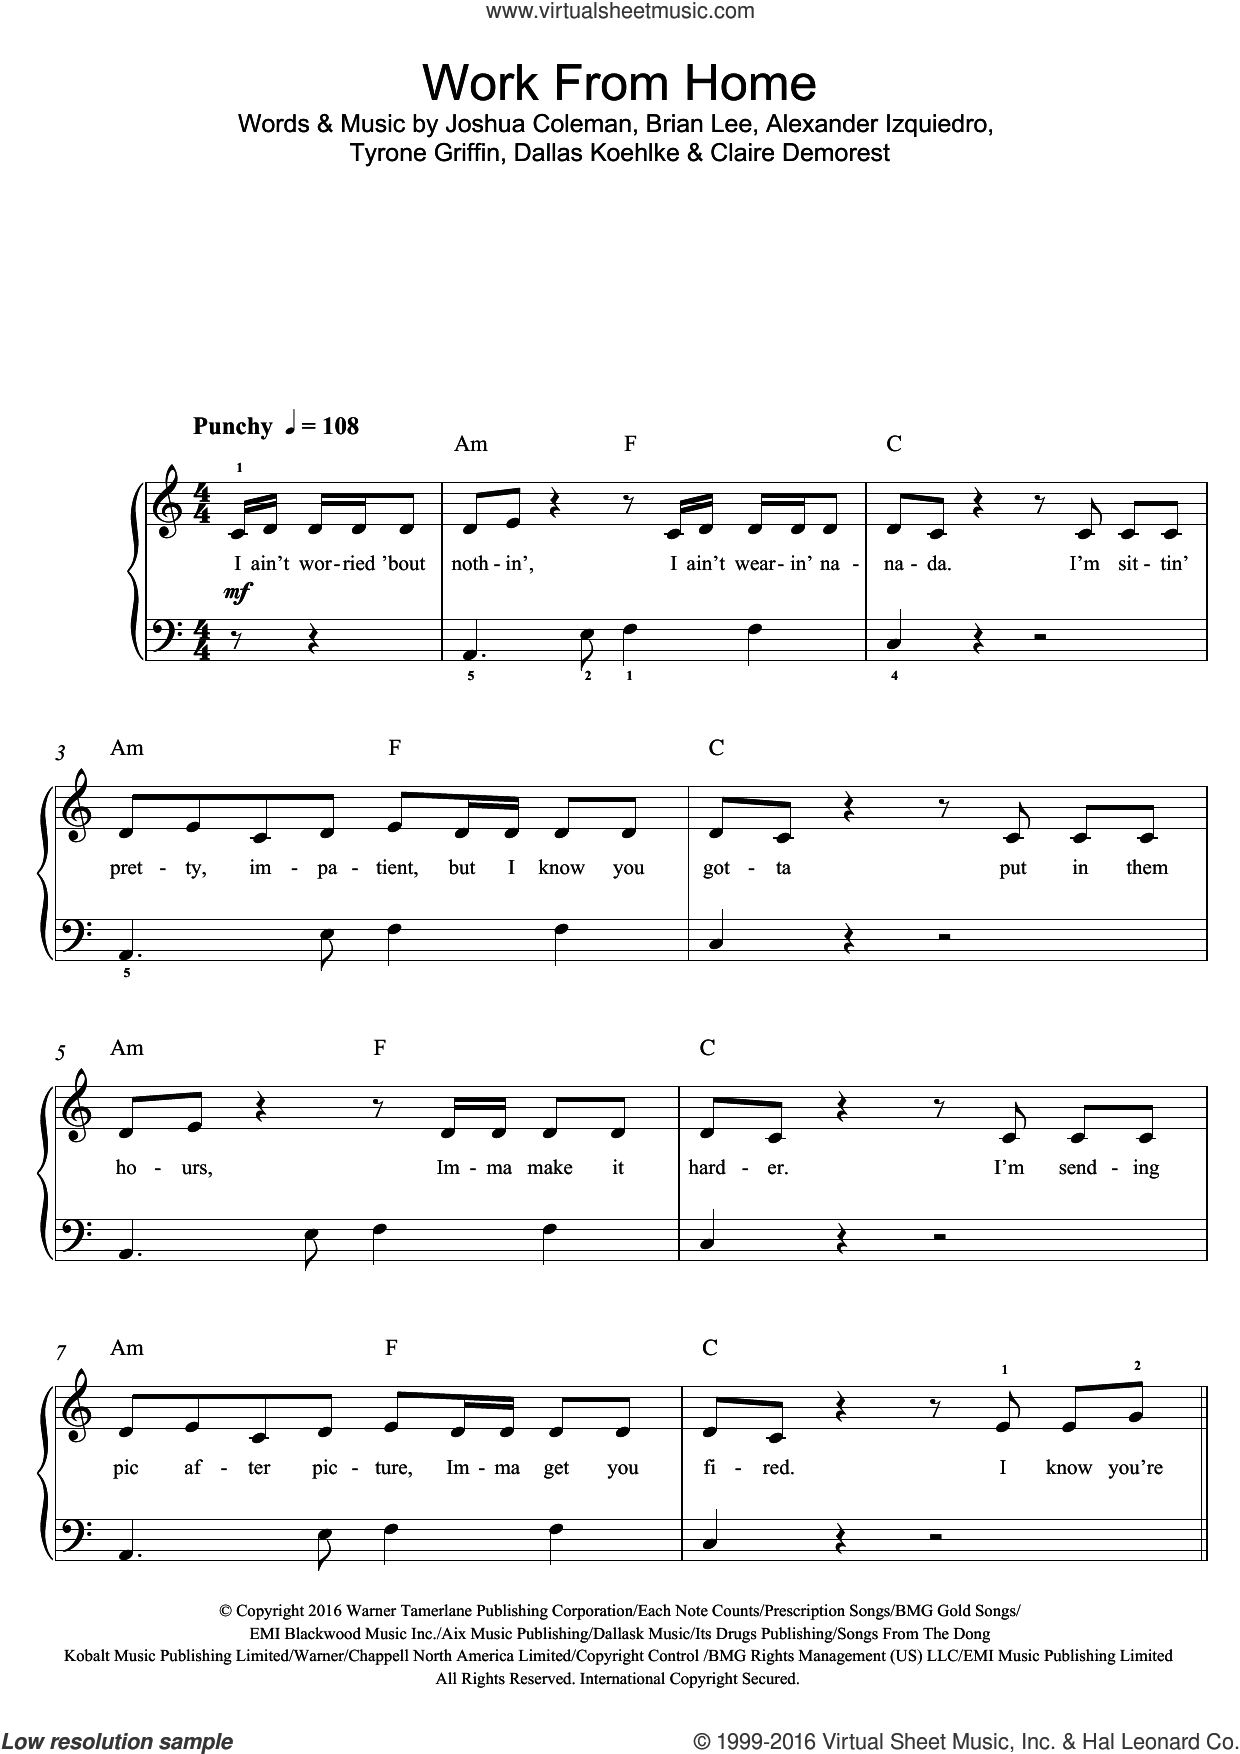 Work From Home (featuring Ty Dolla $ign) sheet music for voice, piano or guitar by Fifth Harmony, Ty Dolla $ign, Alexander Izquiedro, Brian Lee, Claire Demorest, Dallas Koehlke, Joshua Coleman and Tyrone Griffin, intermediate skill level